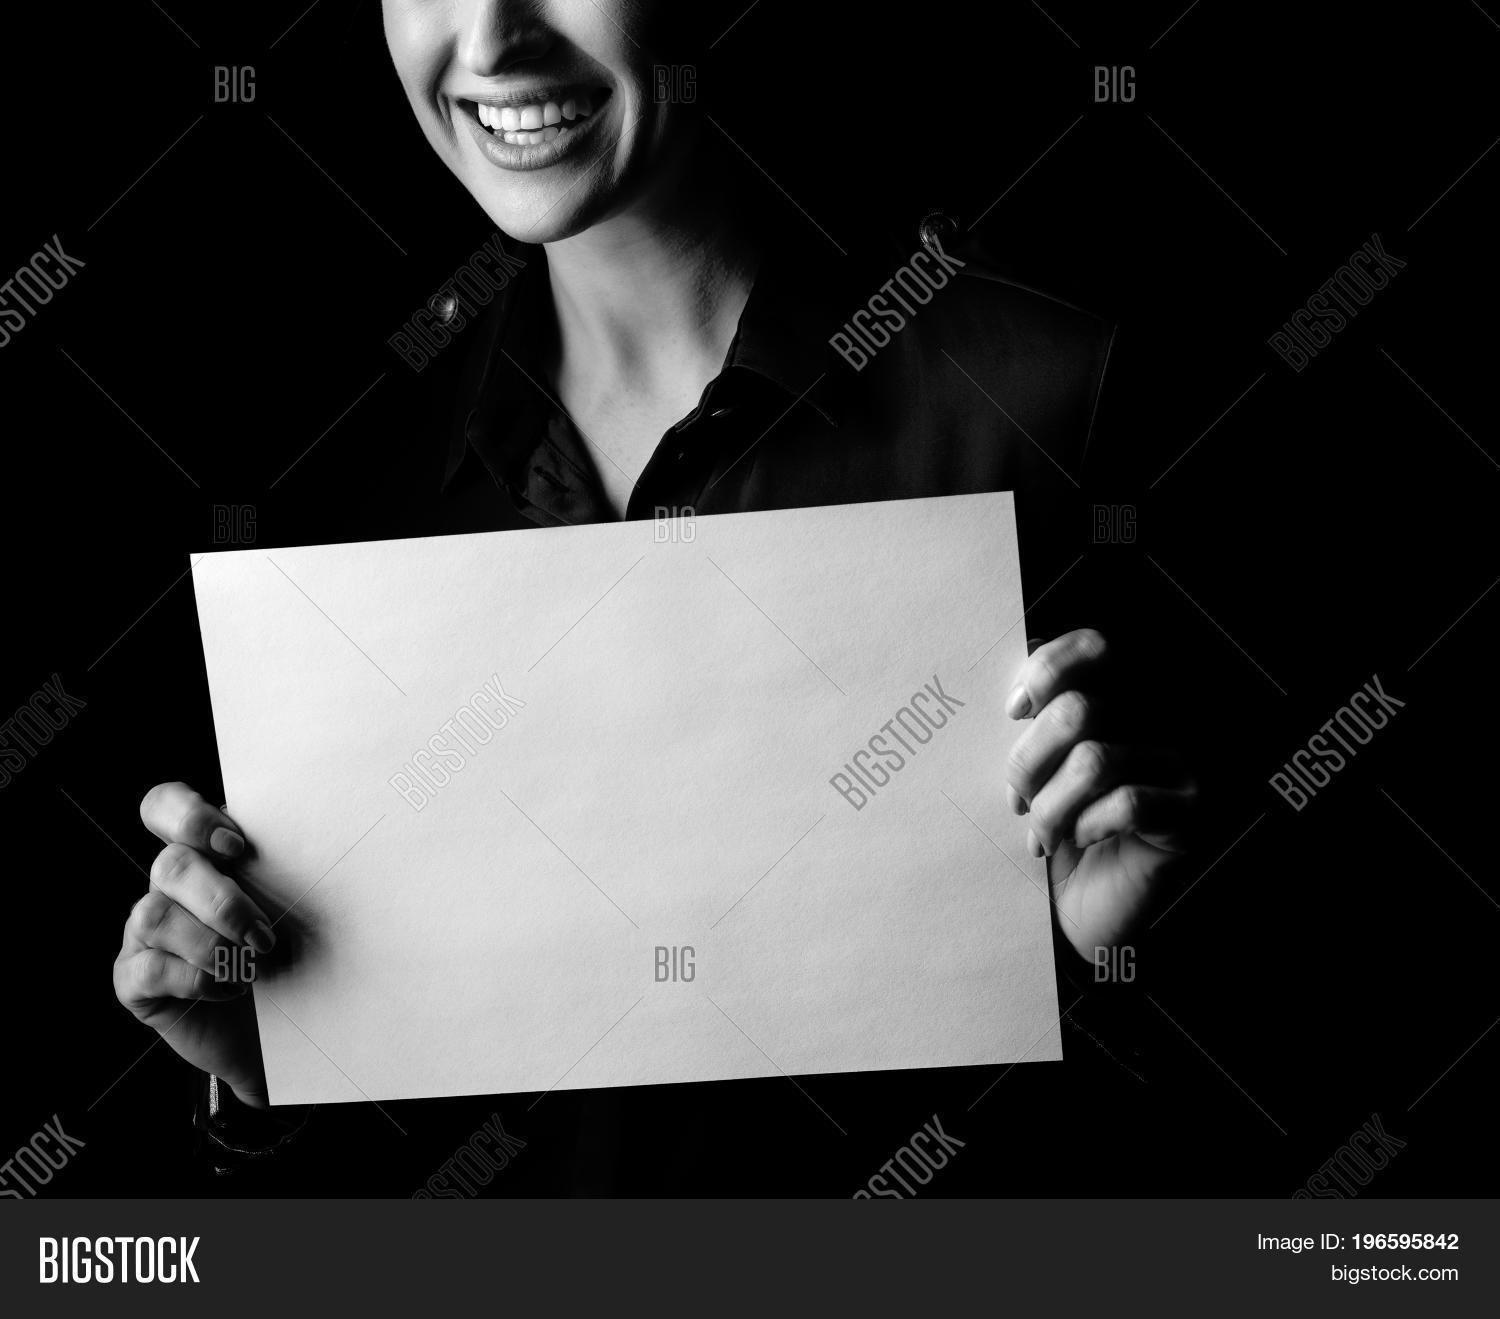 ad,adult,advert,advertisement,announcement,background,banner,black,blank,board,bw,card,caucasian,close,closeup,dark,dress,female,femininity,hand,info,information,isolated,manifest,manifesto,monochrome,notice,one,portrait,poster,require,sheet,show,showing,signboard,statement,white,woman,womanly